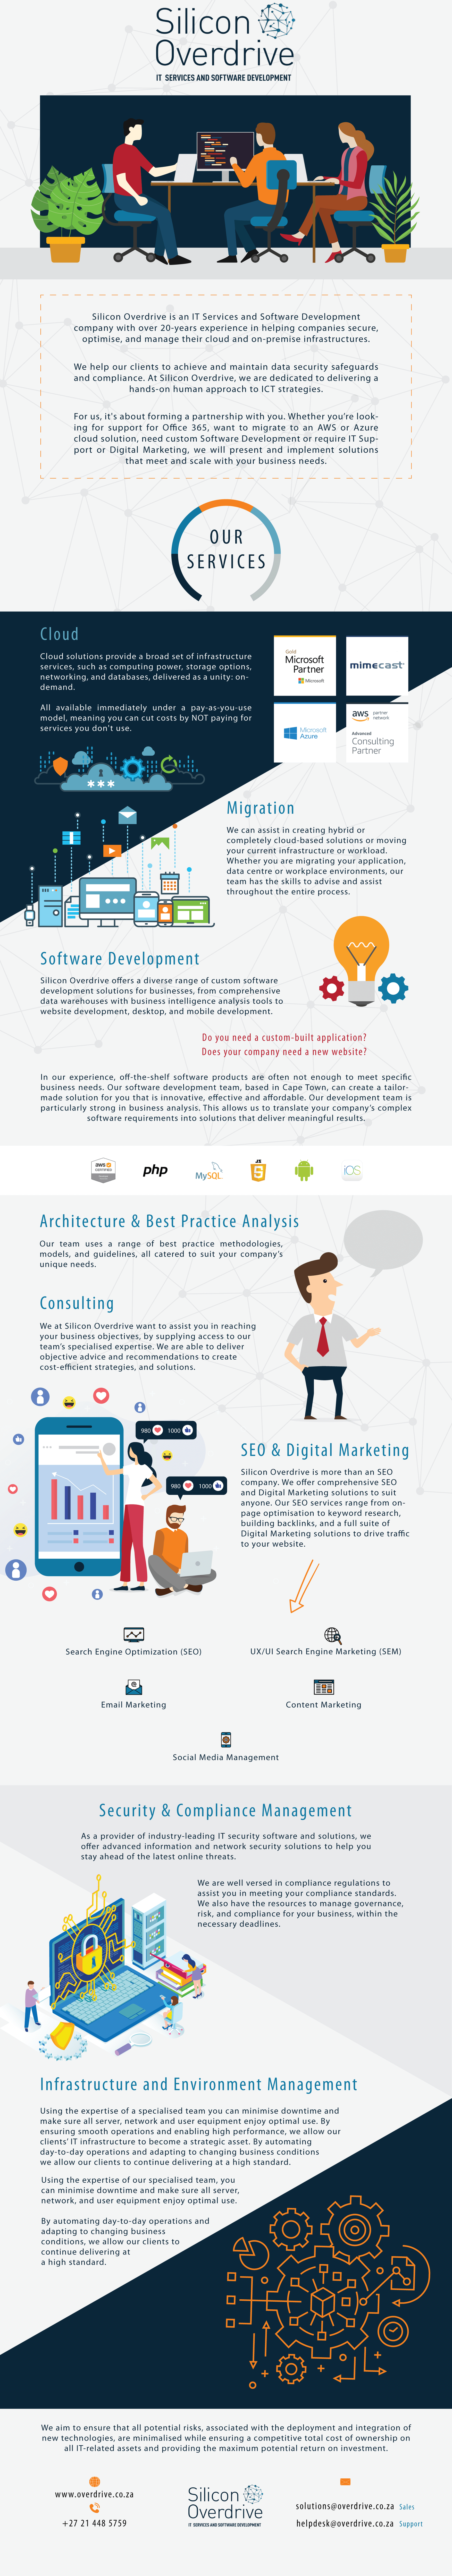 infographic showcasing services provided by Silicon Overdrive | Cloud | Migration | Software Development | Architecture | Consulting | SEO and Digital Marketing